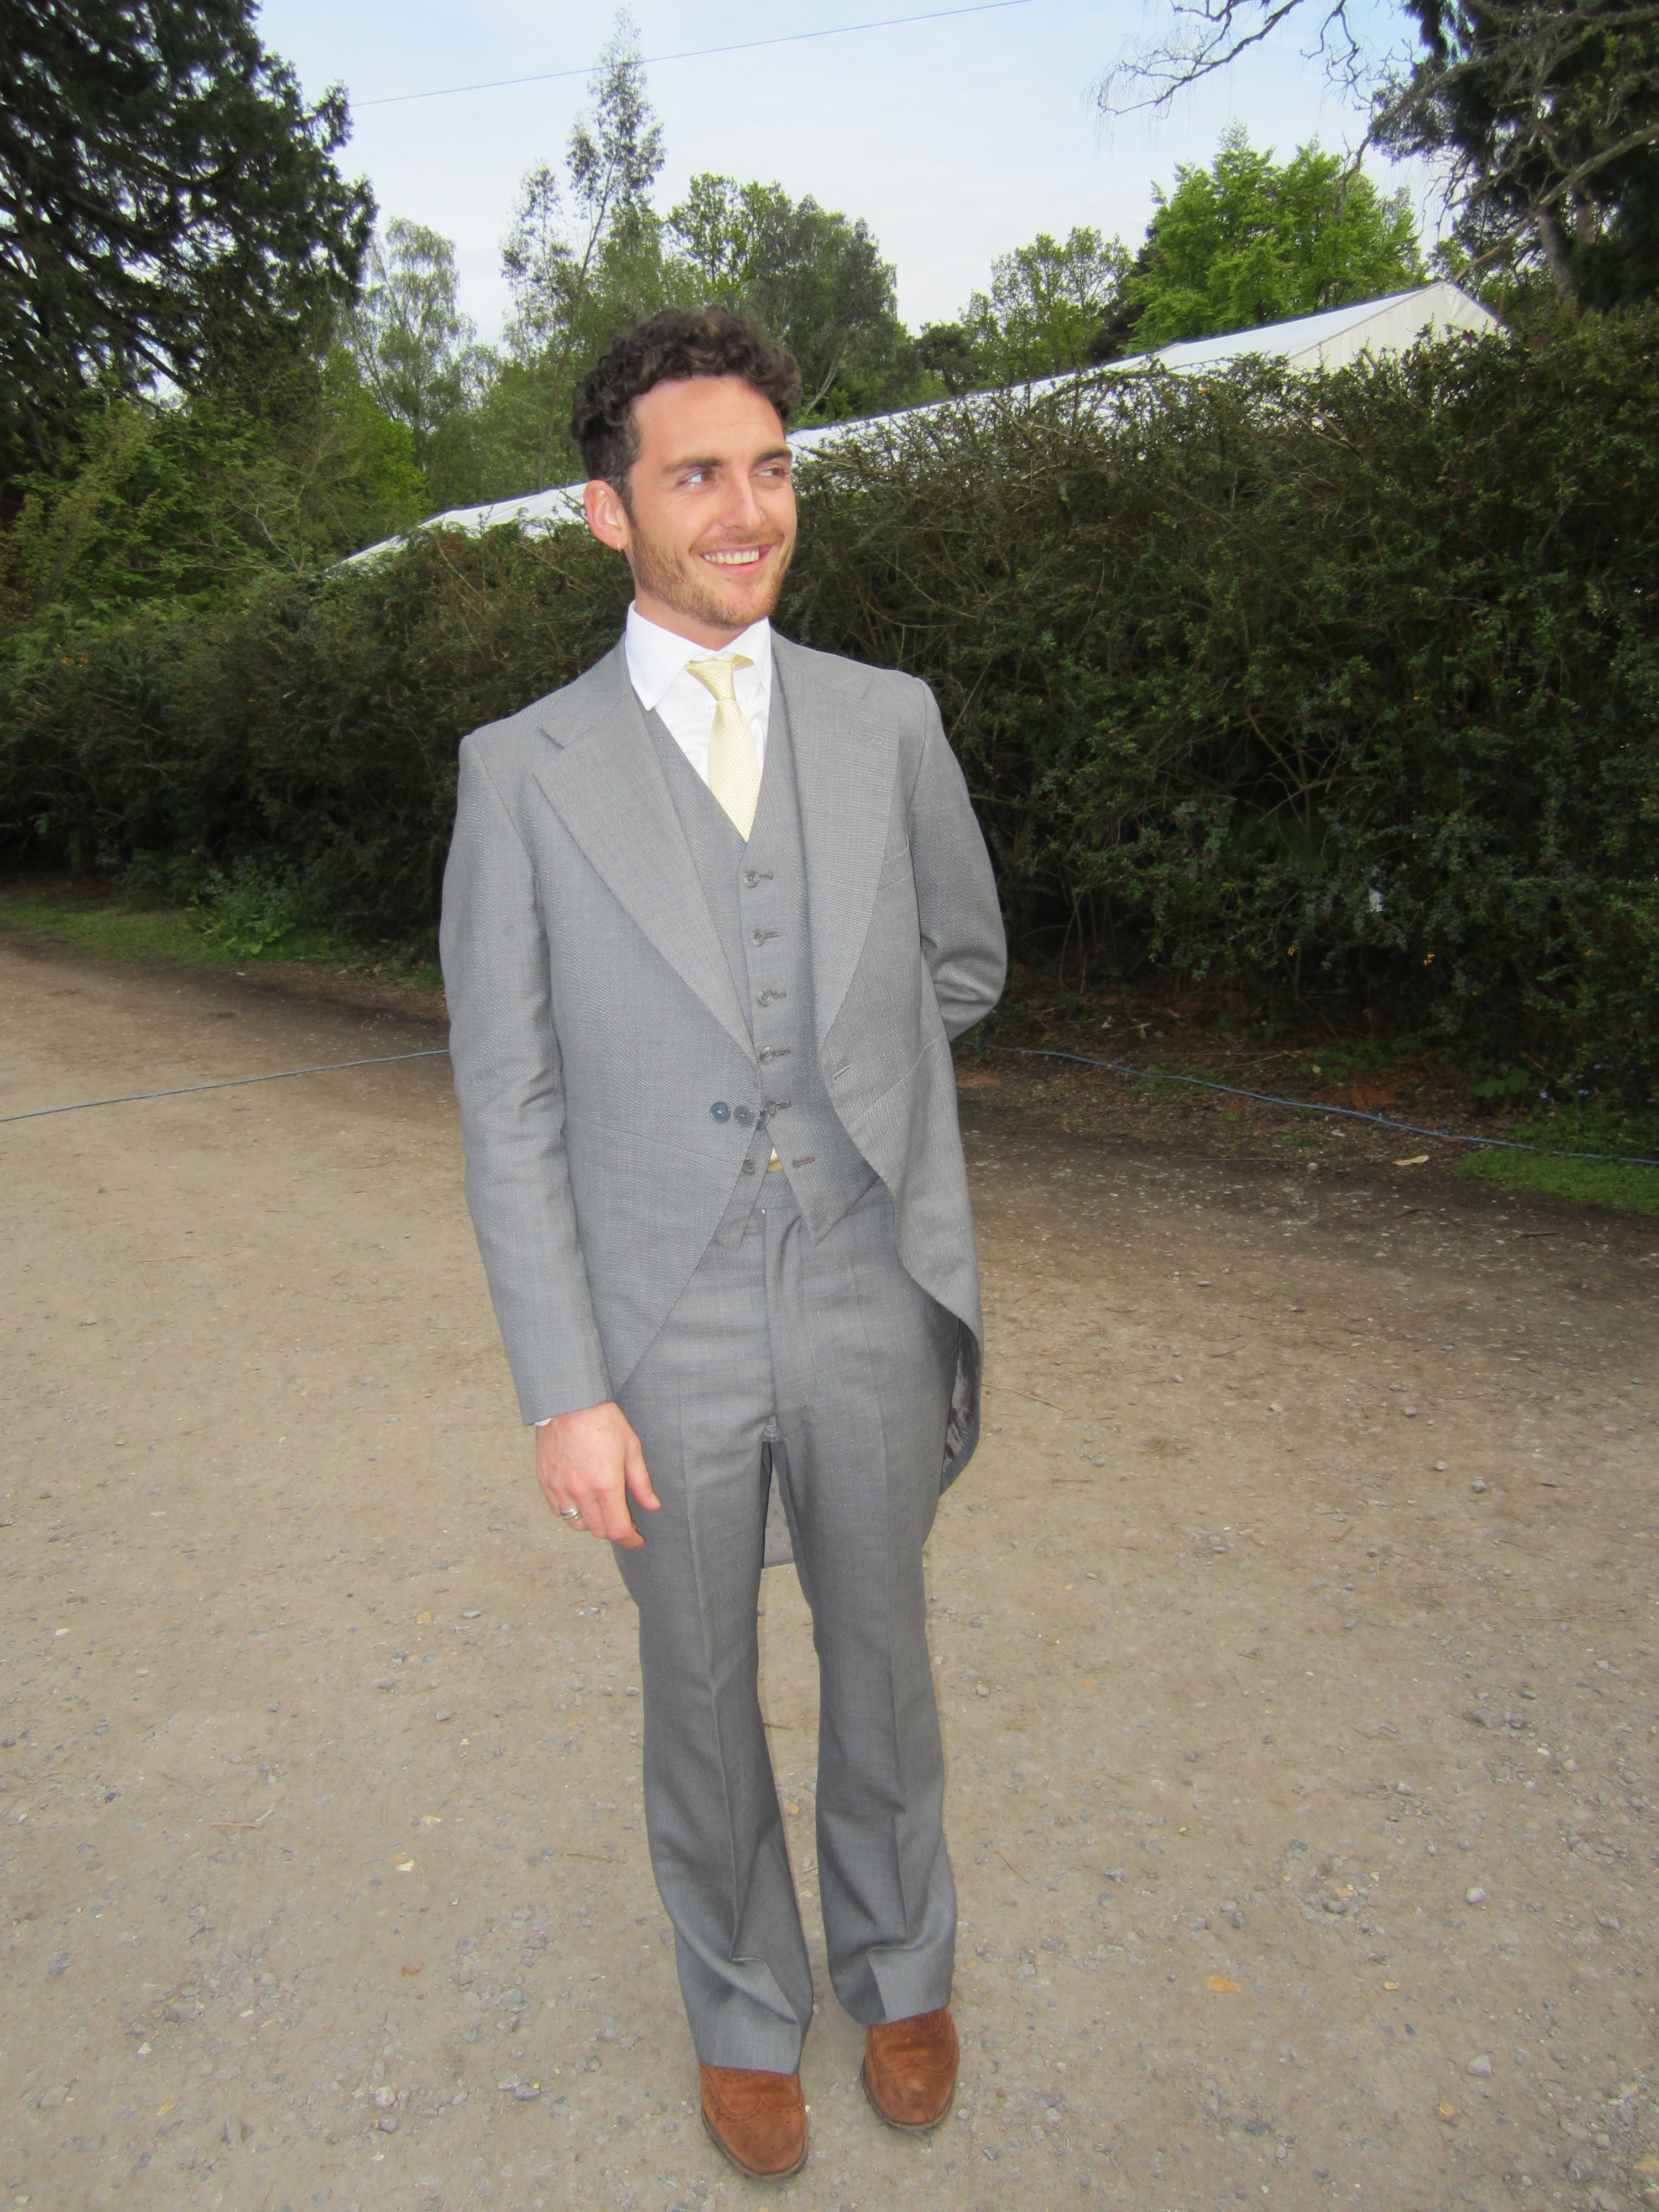 wedding suit tips for men wedding suits Summer Wedding Suit Ideas for Male Guests